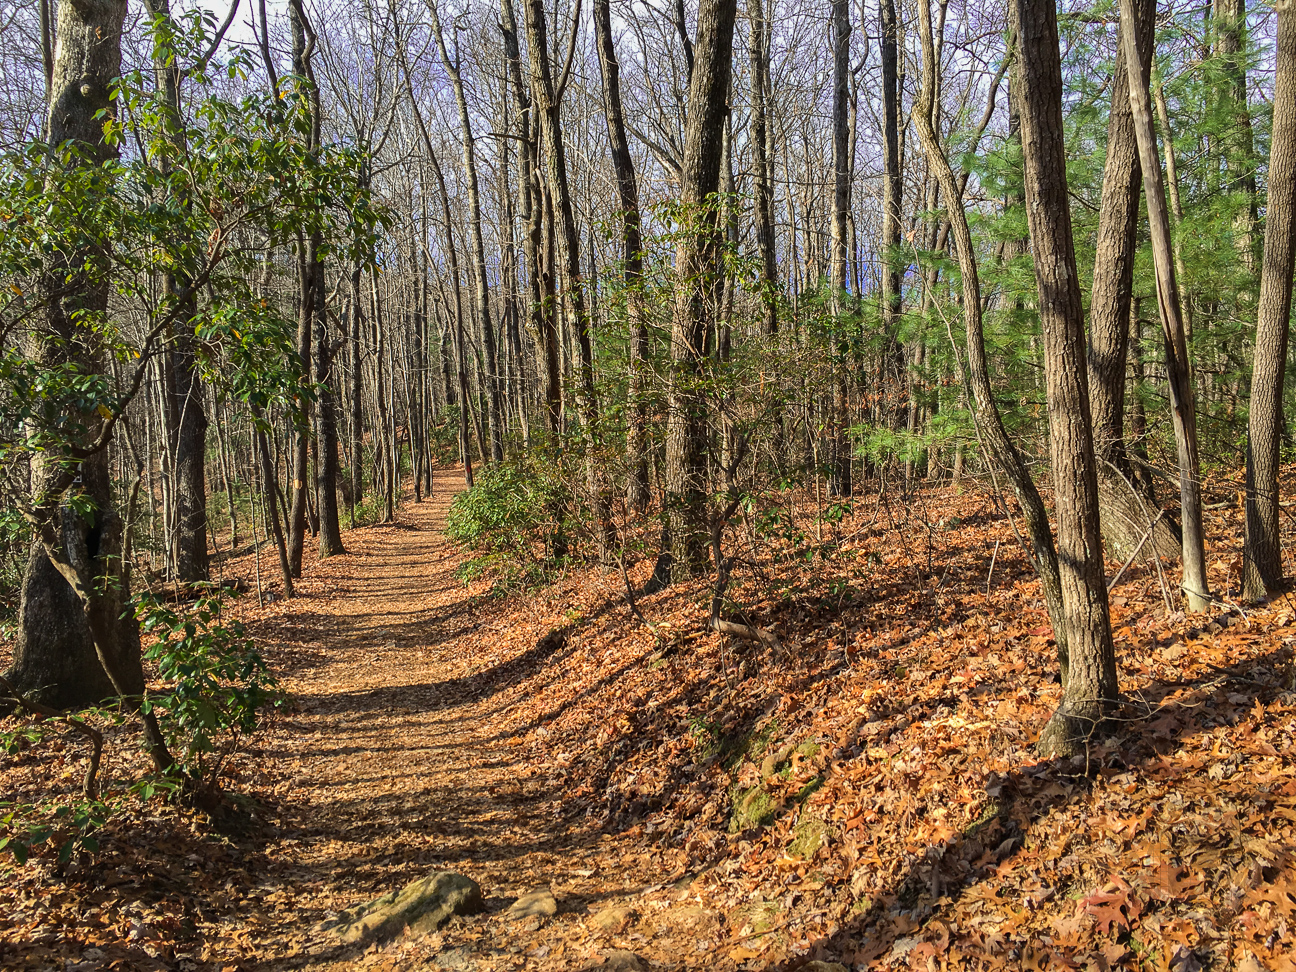 The Raven Cliff Falls Trail is wonderfully maintained and easy to navigate. Long stretches of level, root-free track like this one make hiking a cinch for any ability level.